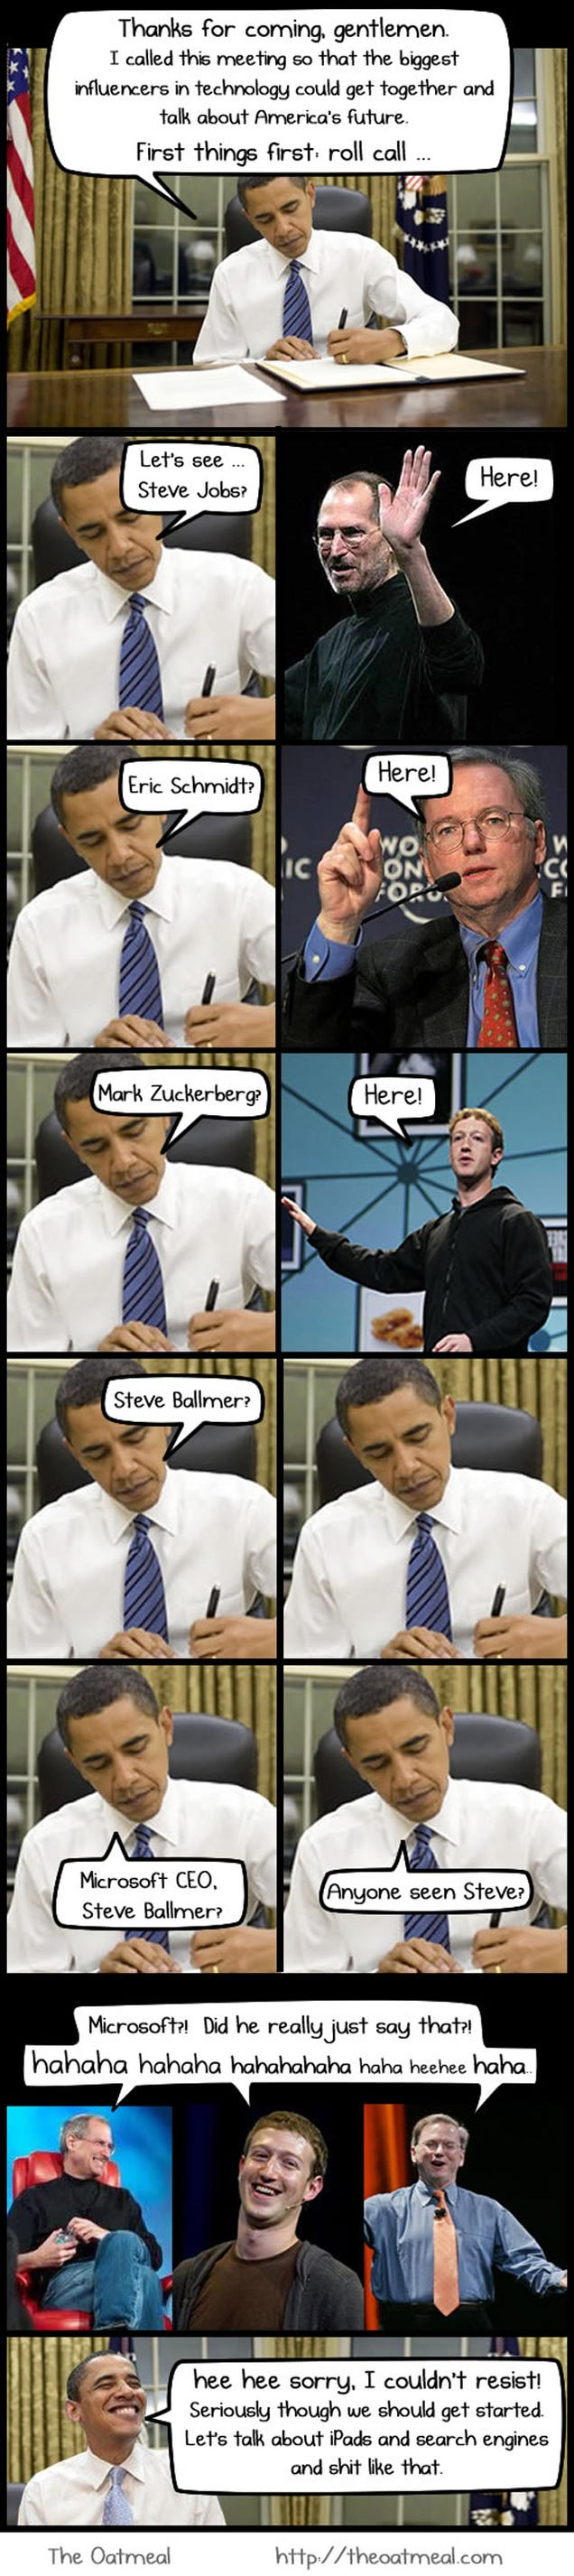 Hey, Why Is Obama Meeting With Jobs, Zuckerberg and Schmidt Tonight Anyway?